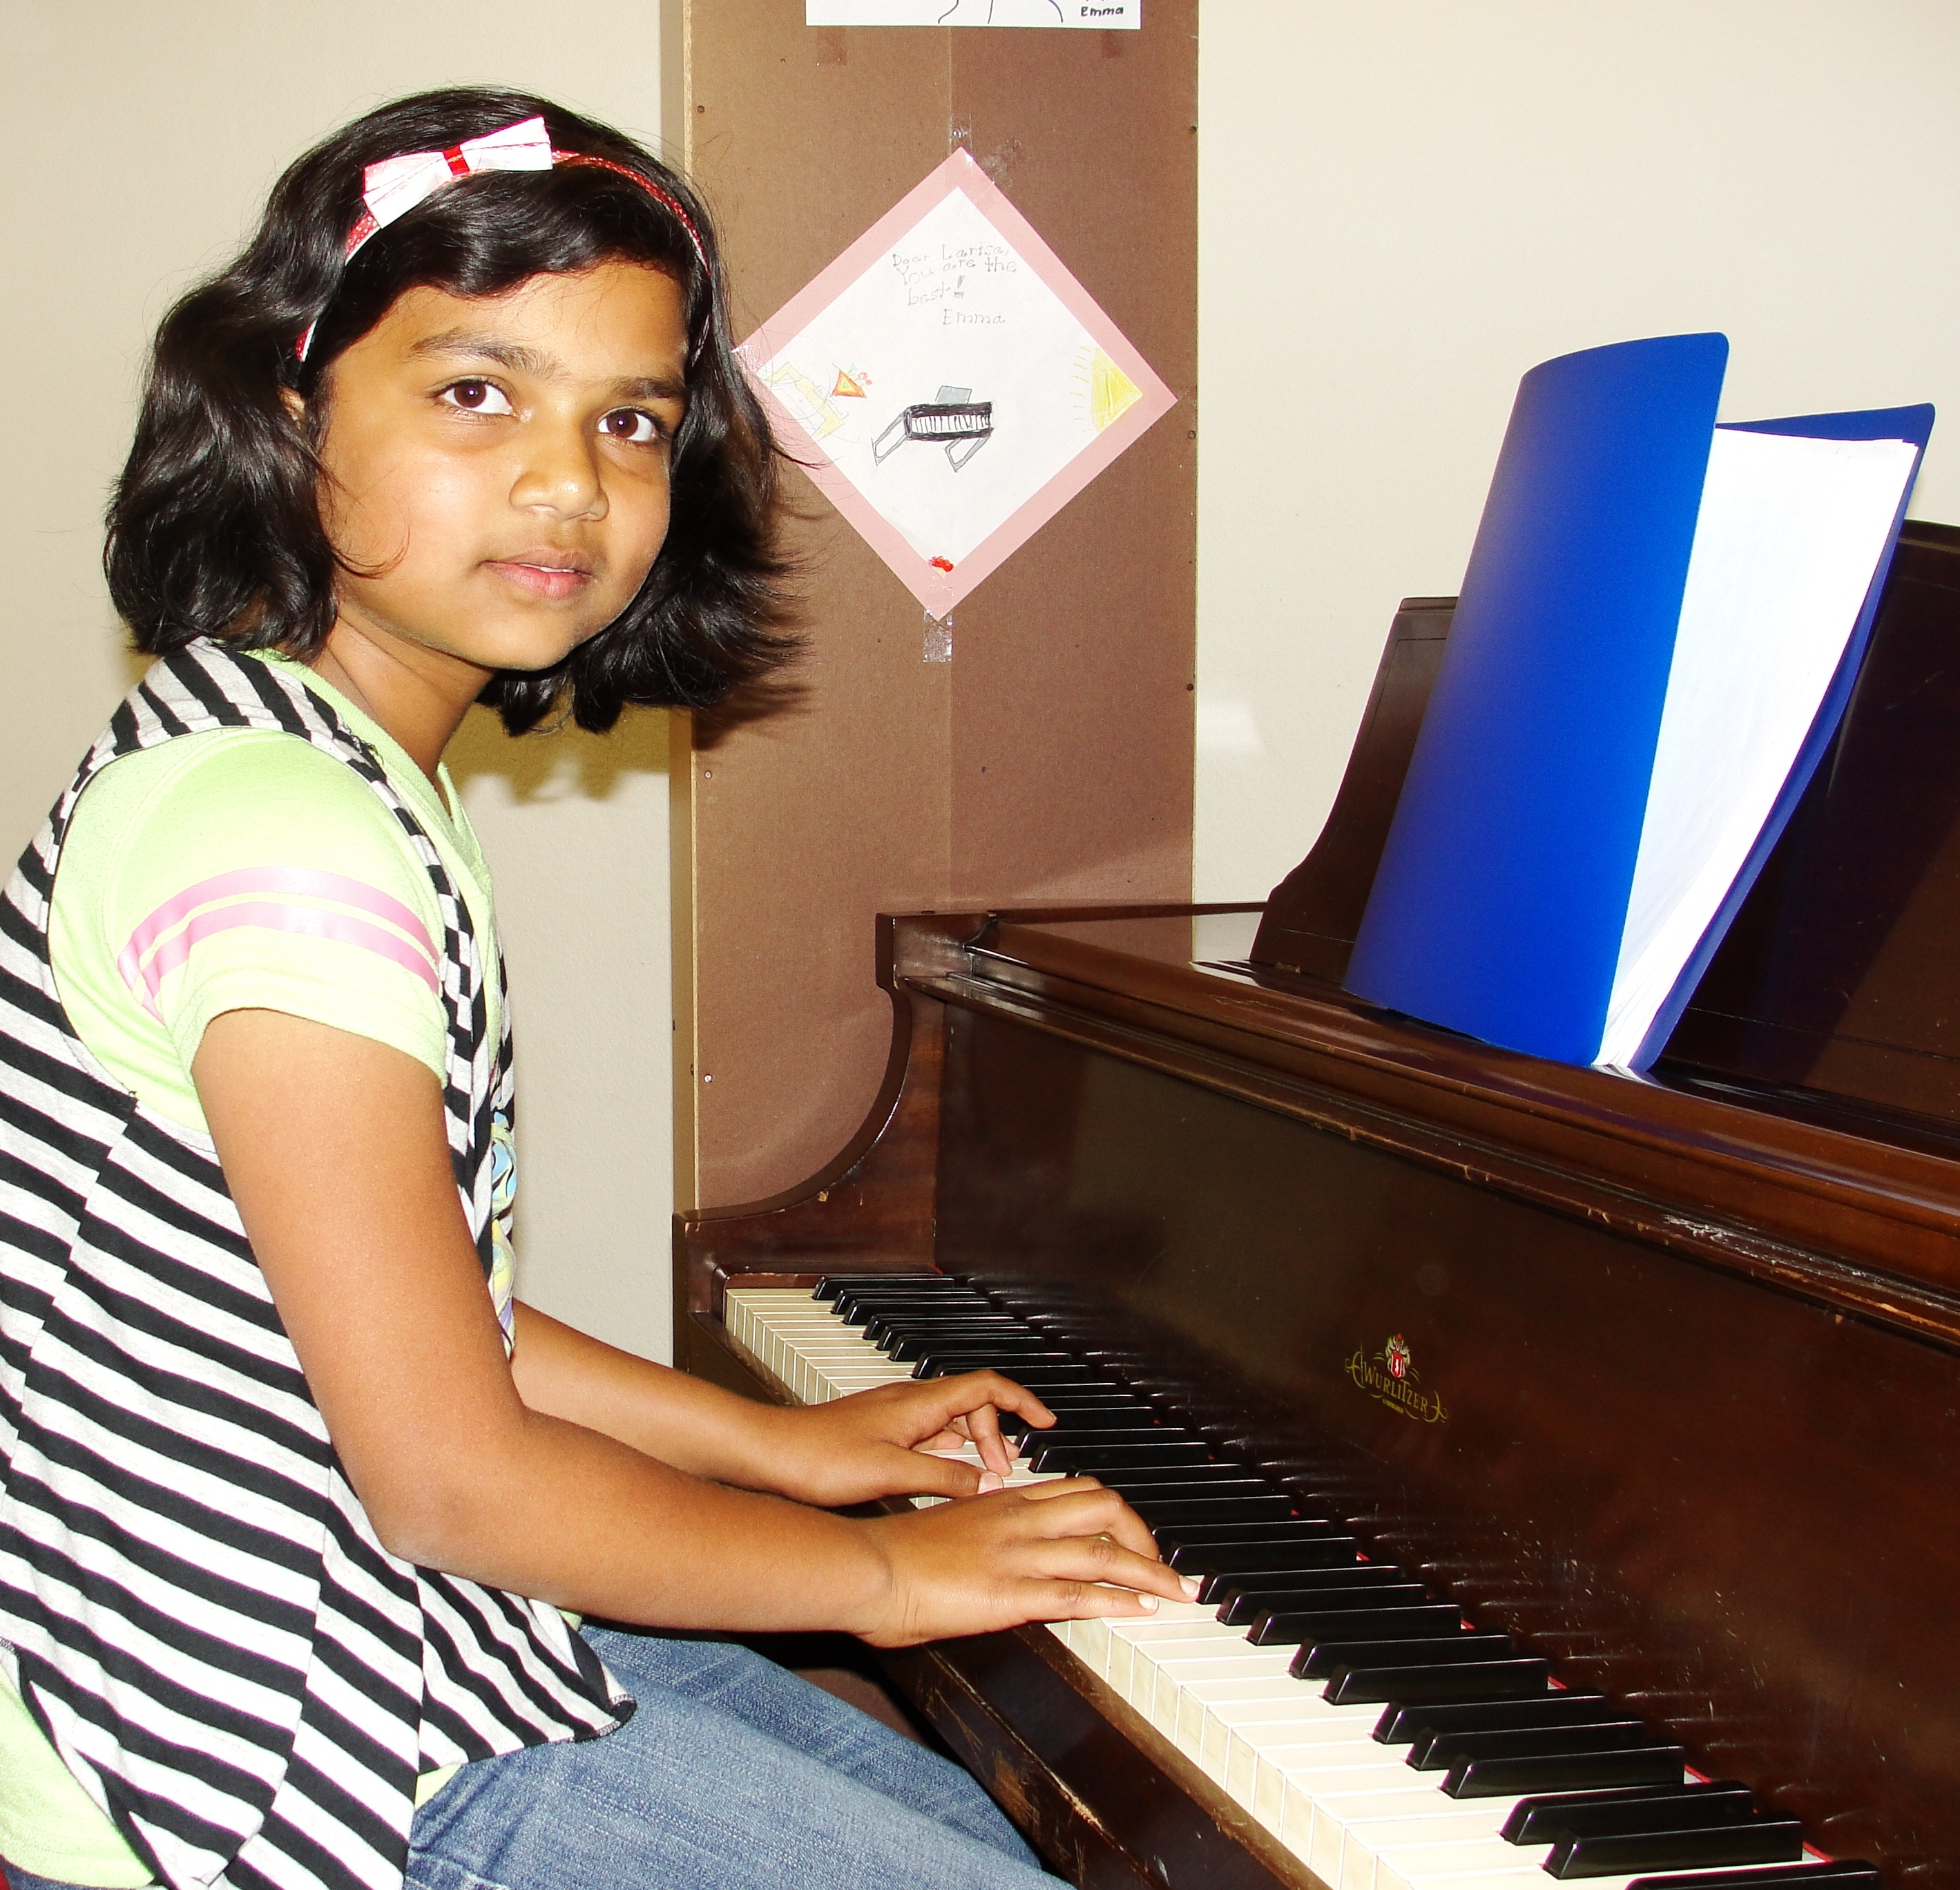 prerana say yes grand piano is not a toy